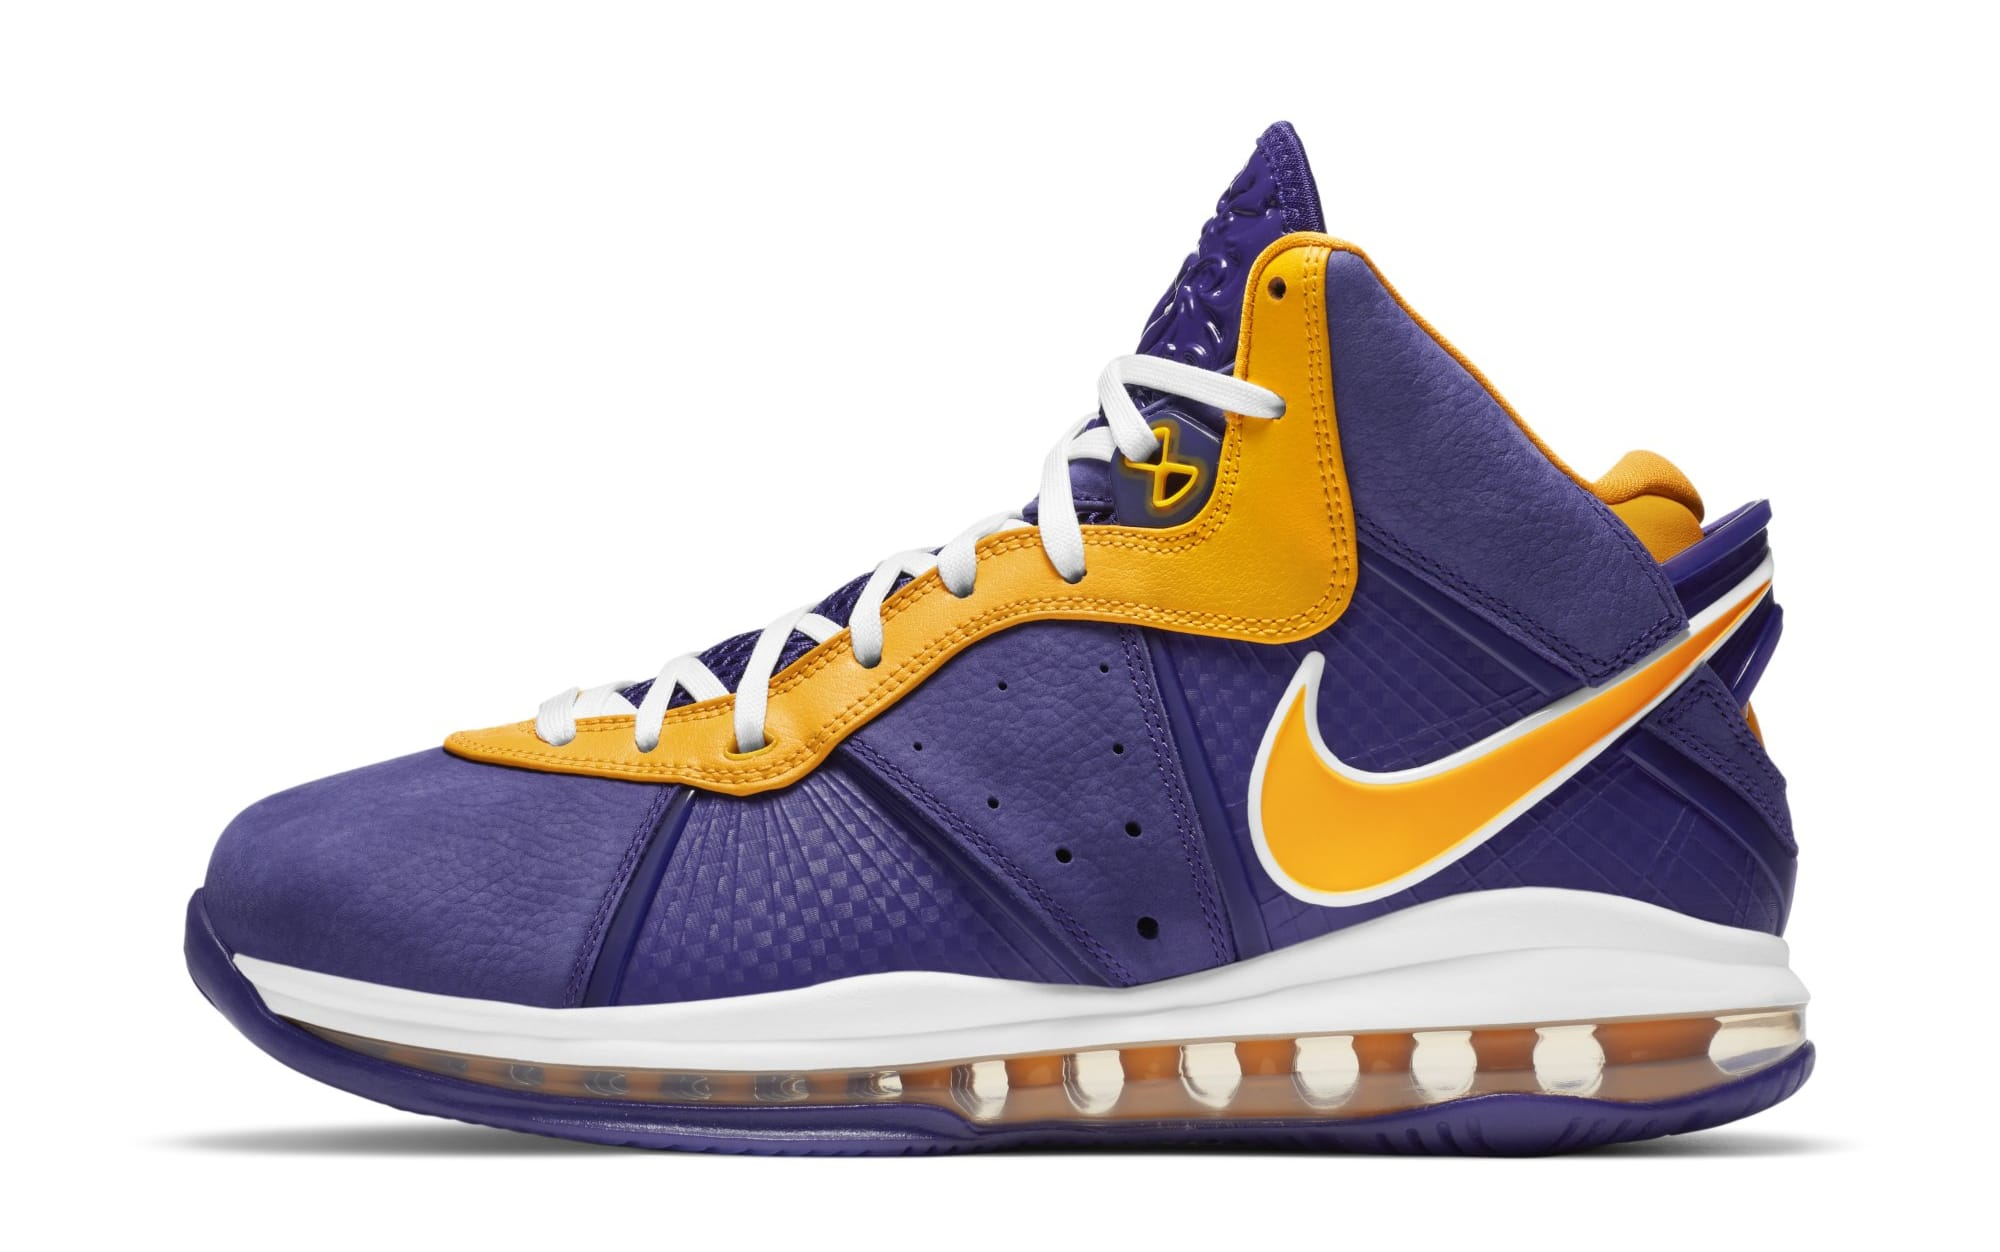 Nike LeBron 8 'Lakers' DC8380-500 (Lateral)